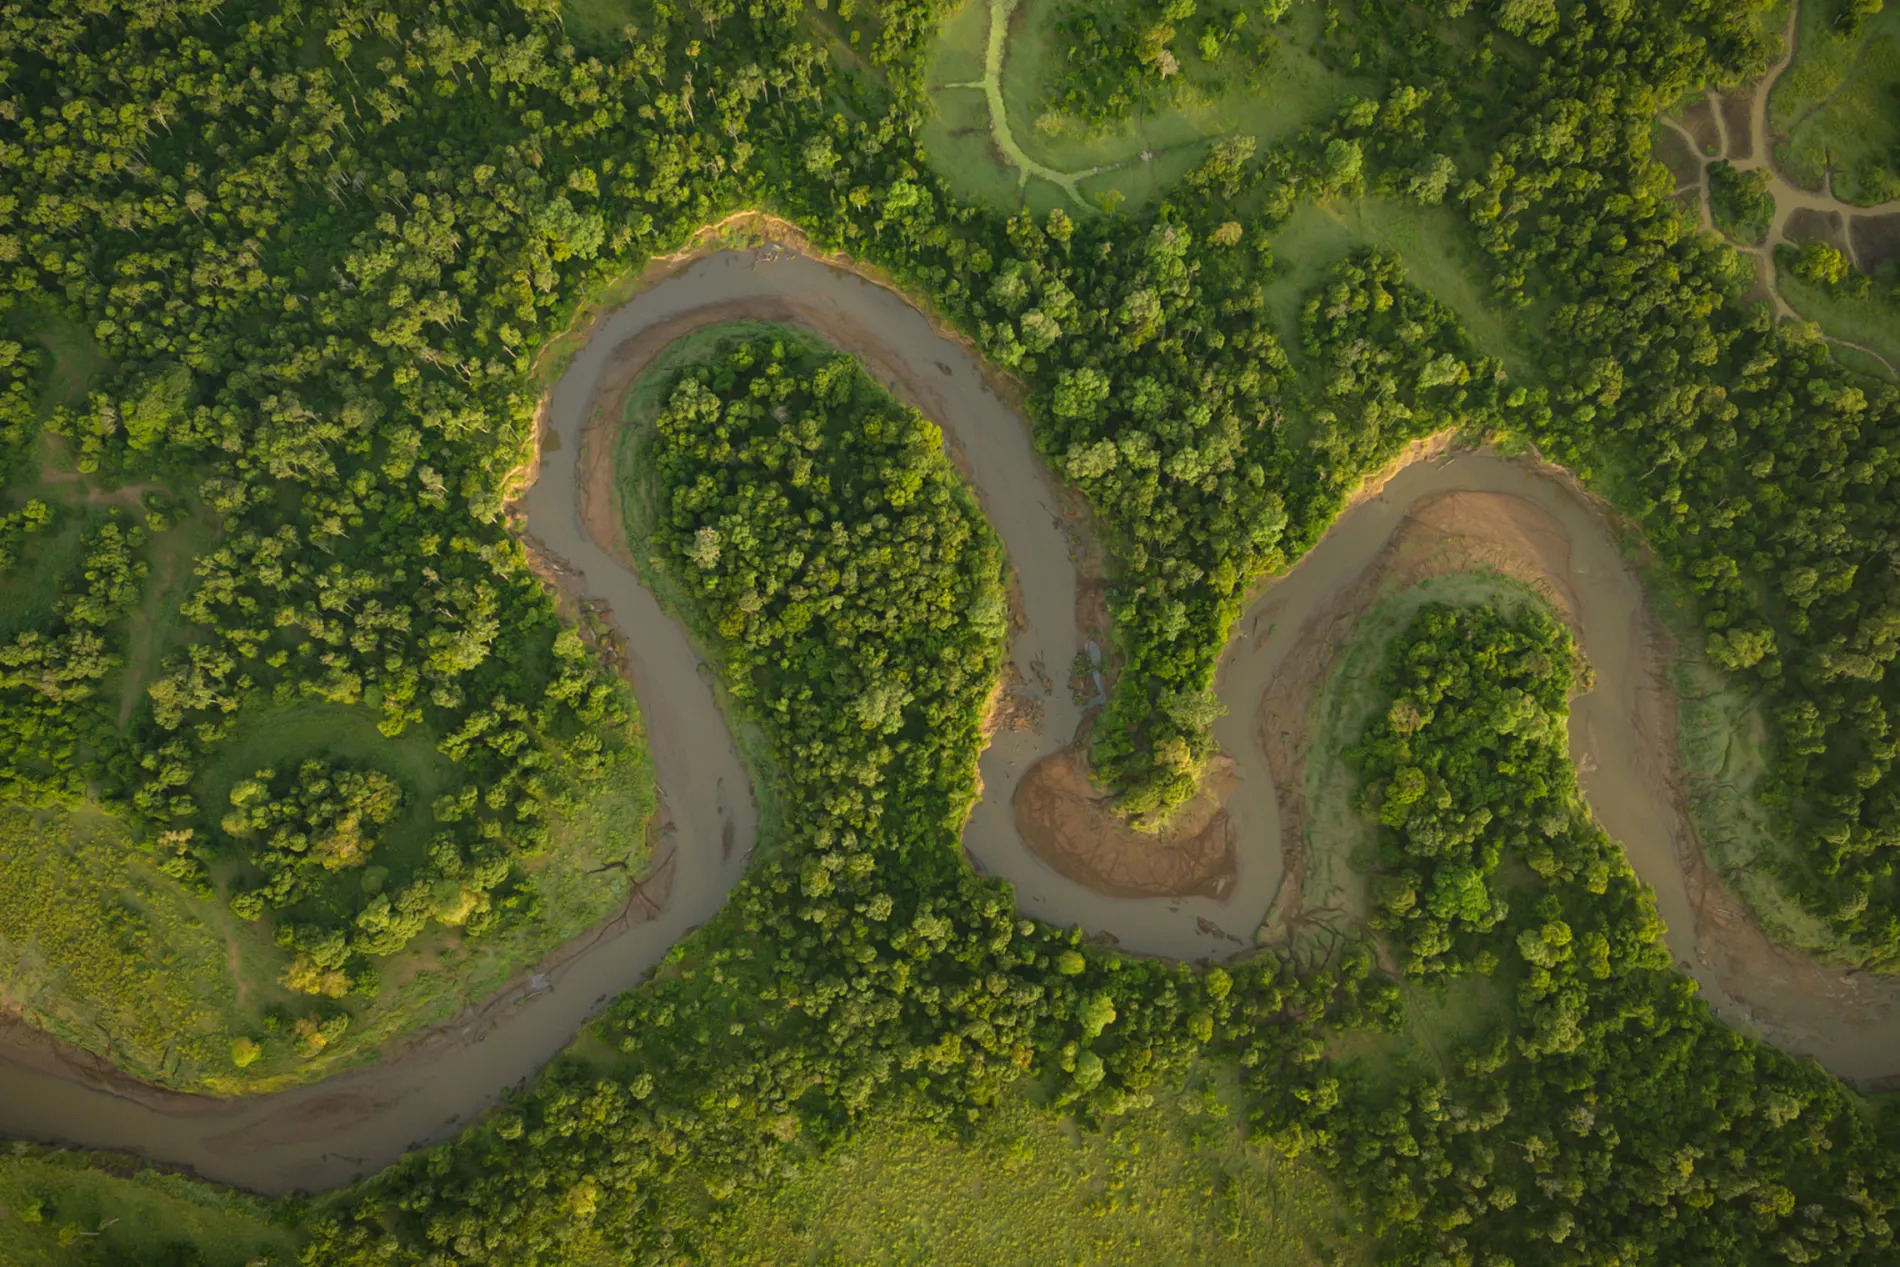 Mara River from above